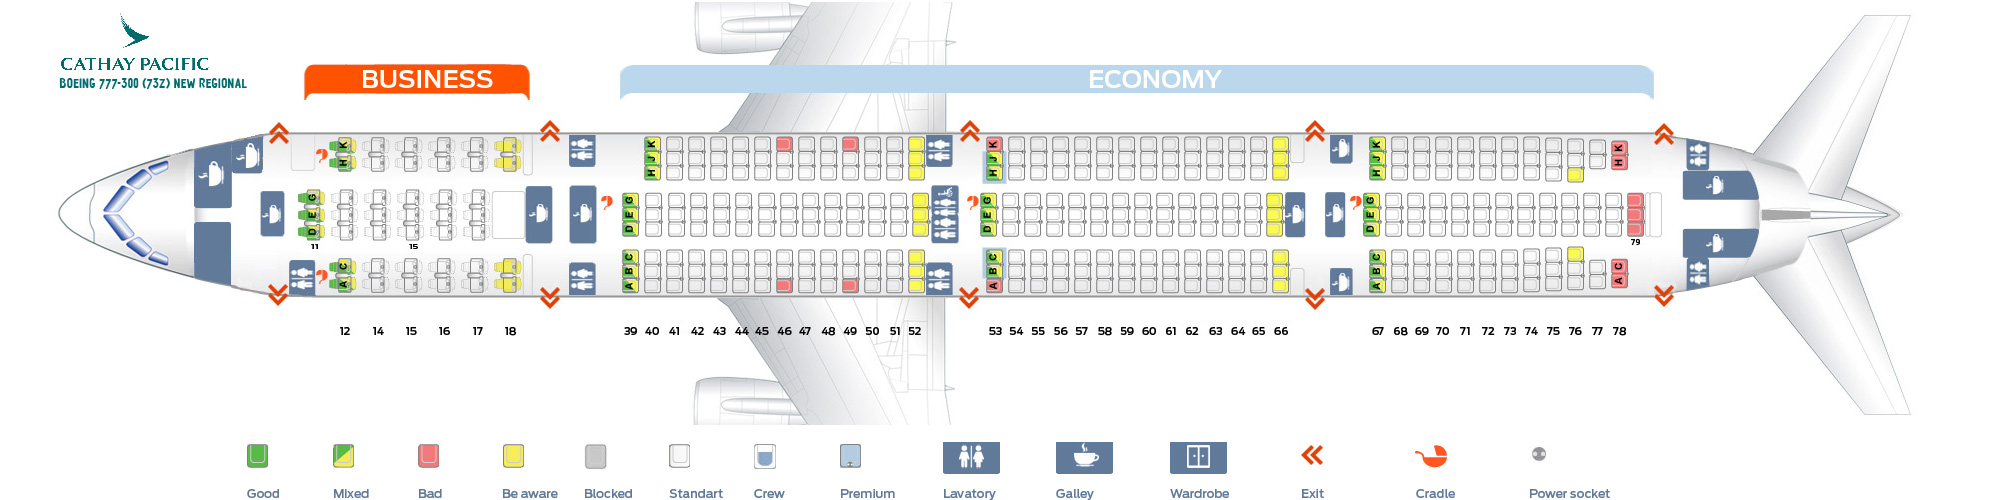 Seat Map Boeing 777-300 New Regional Cathay Pacific